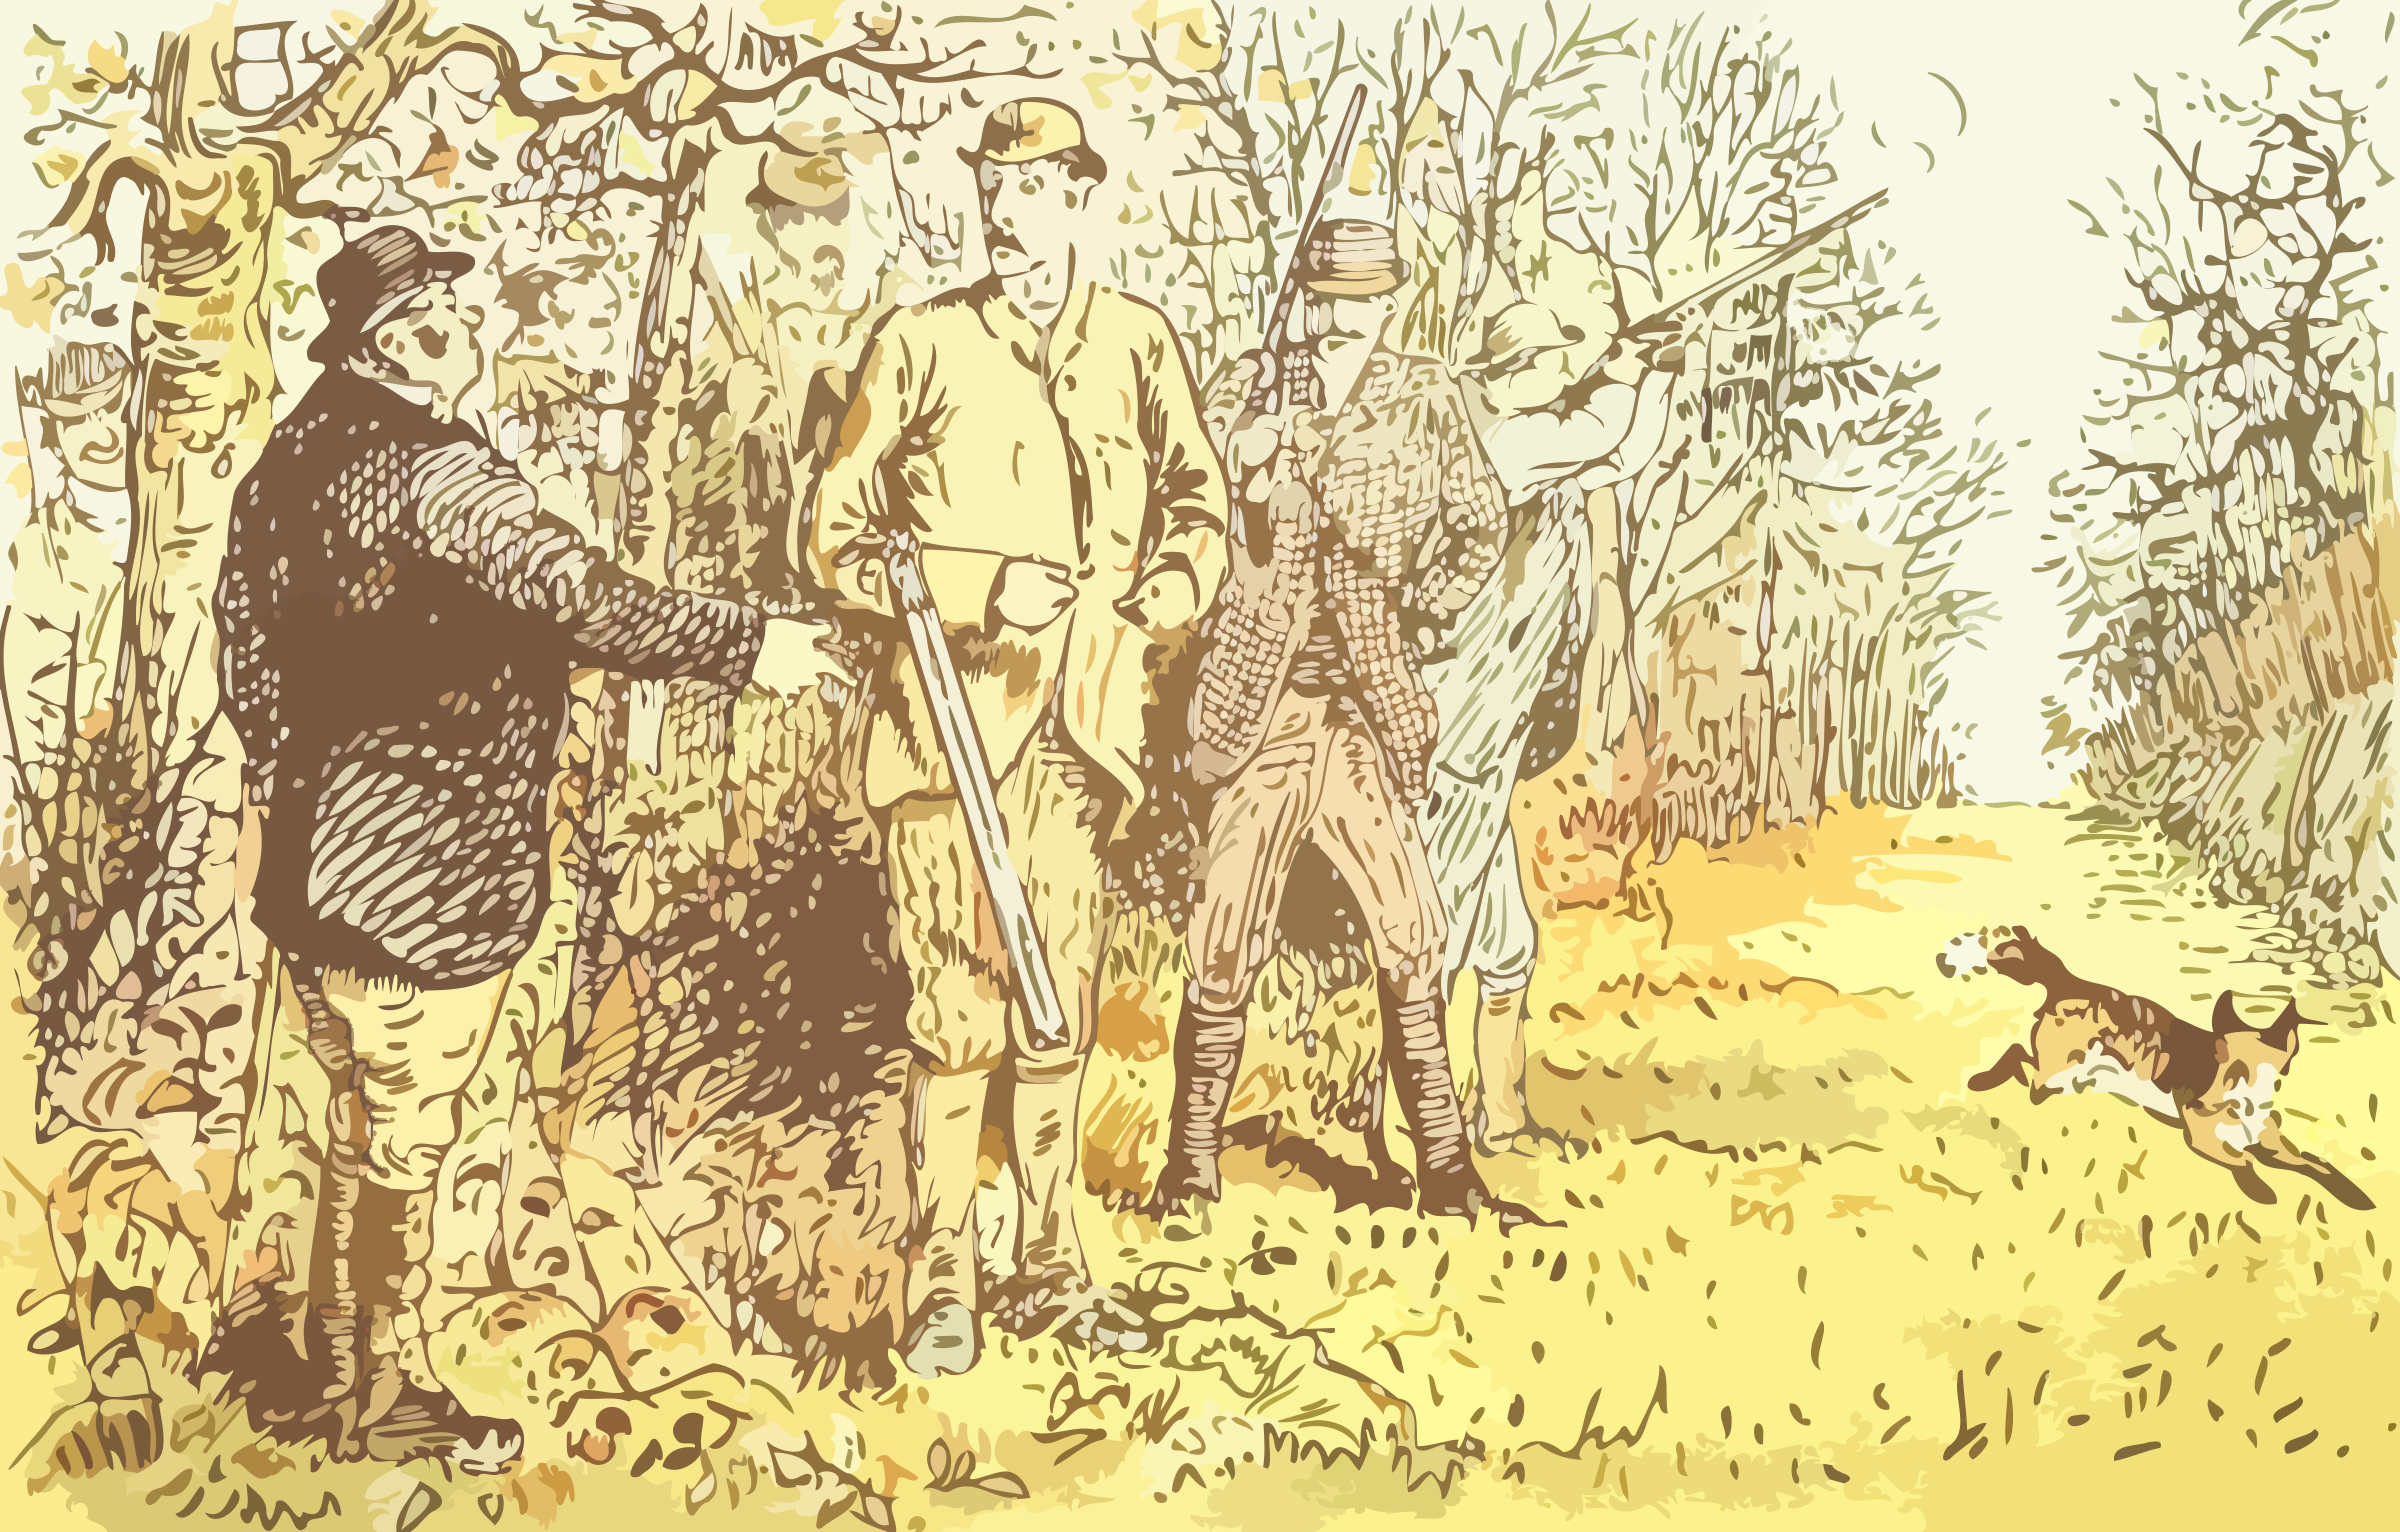 Hunting scene by Firkin